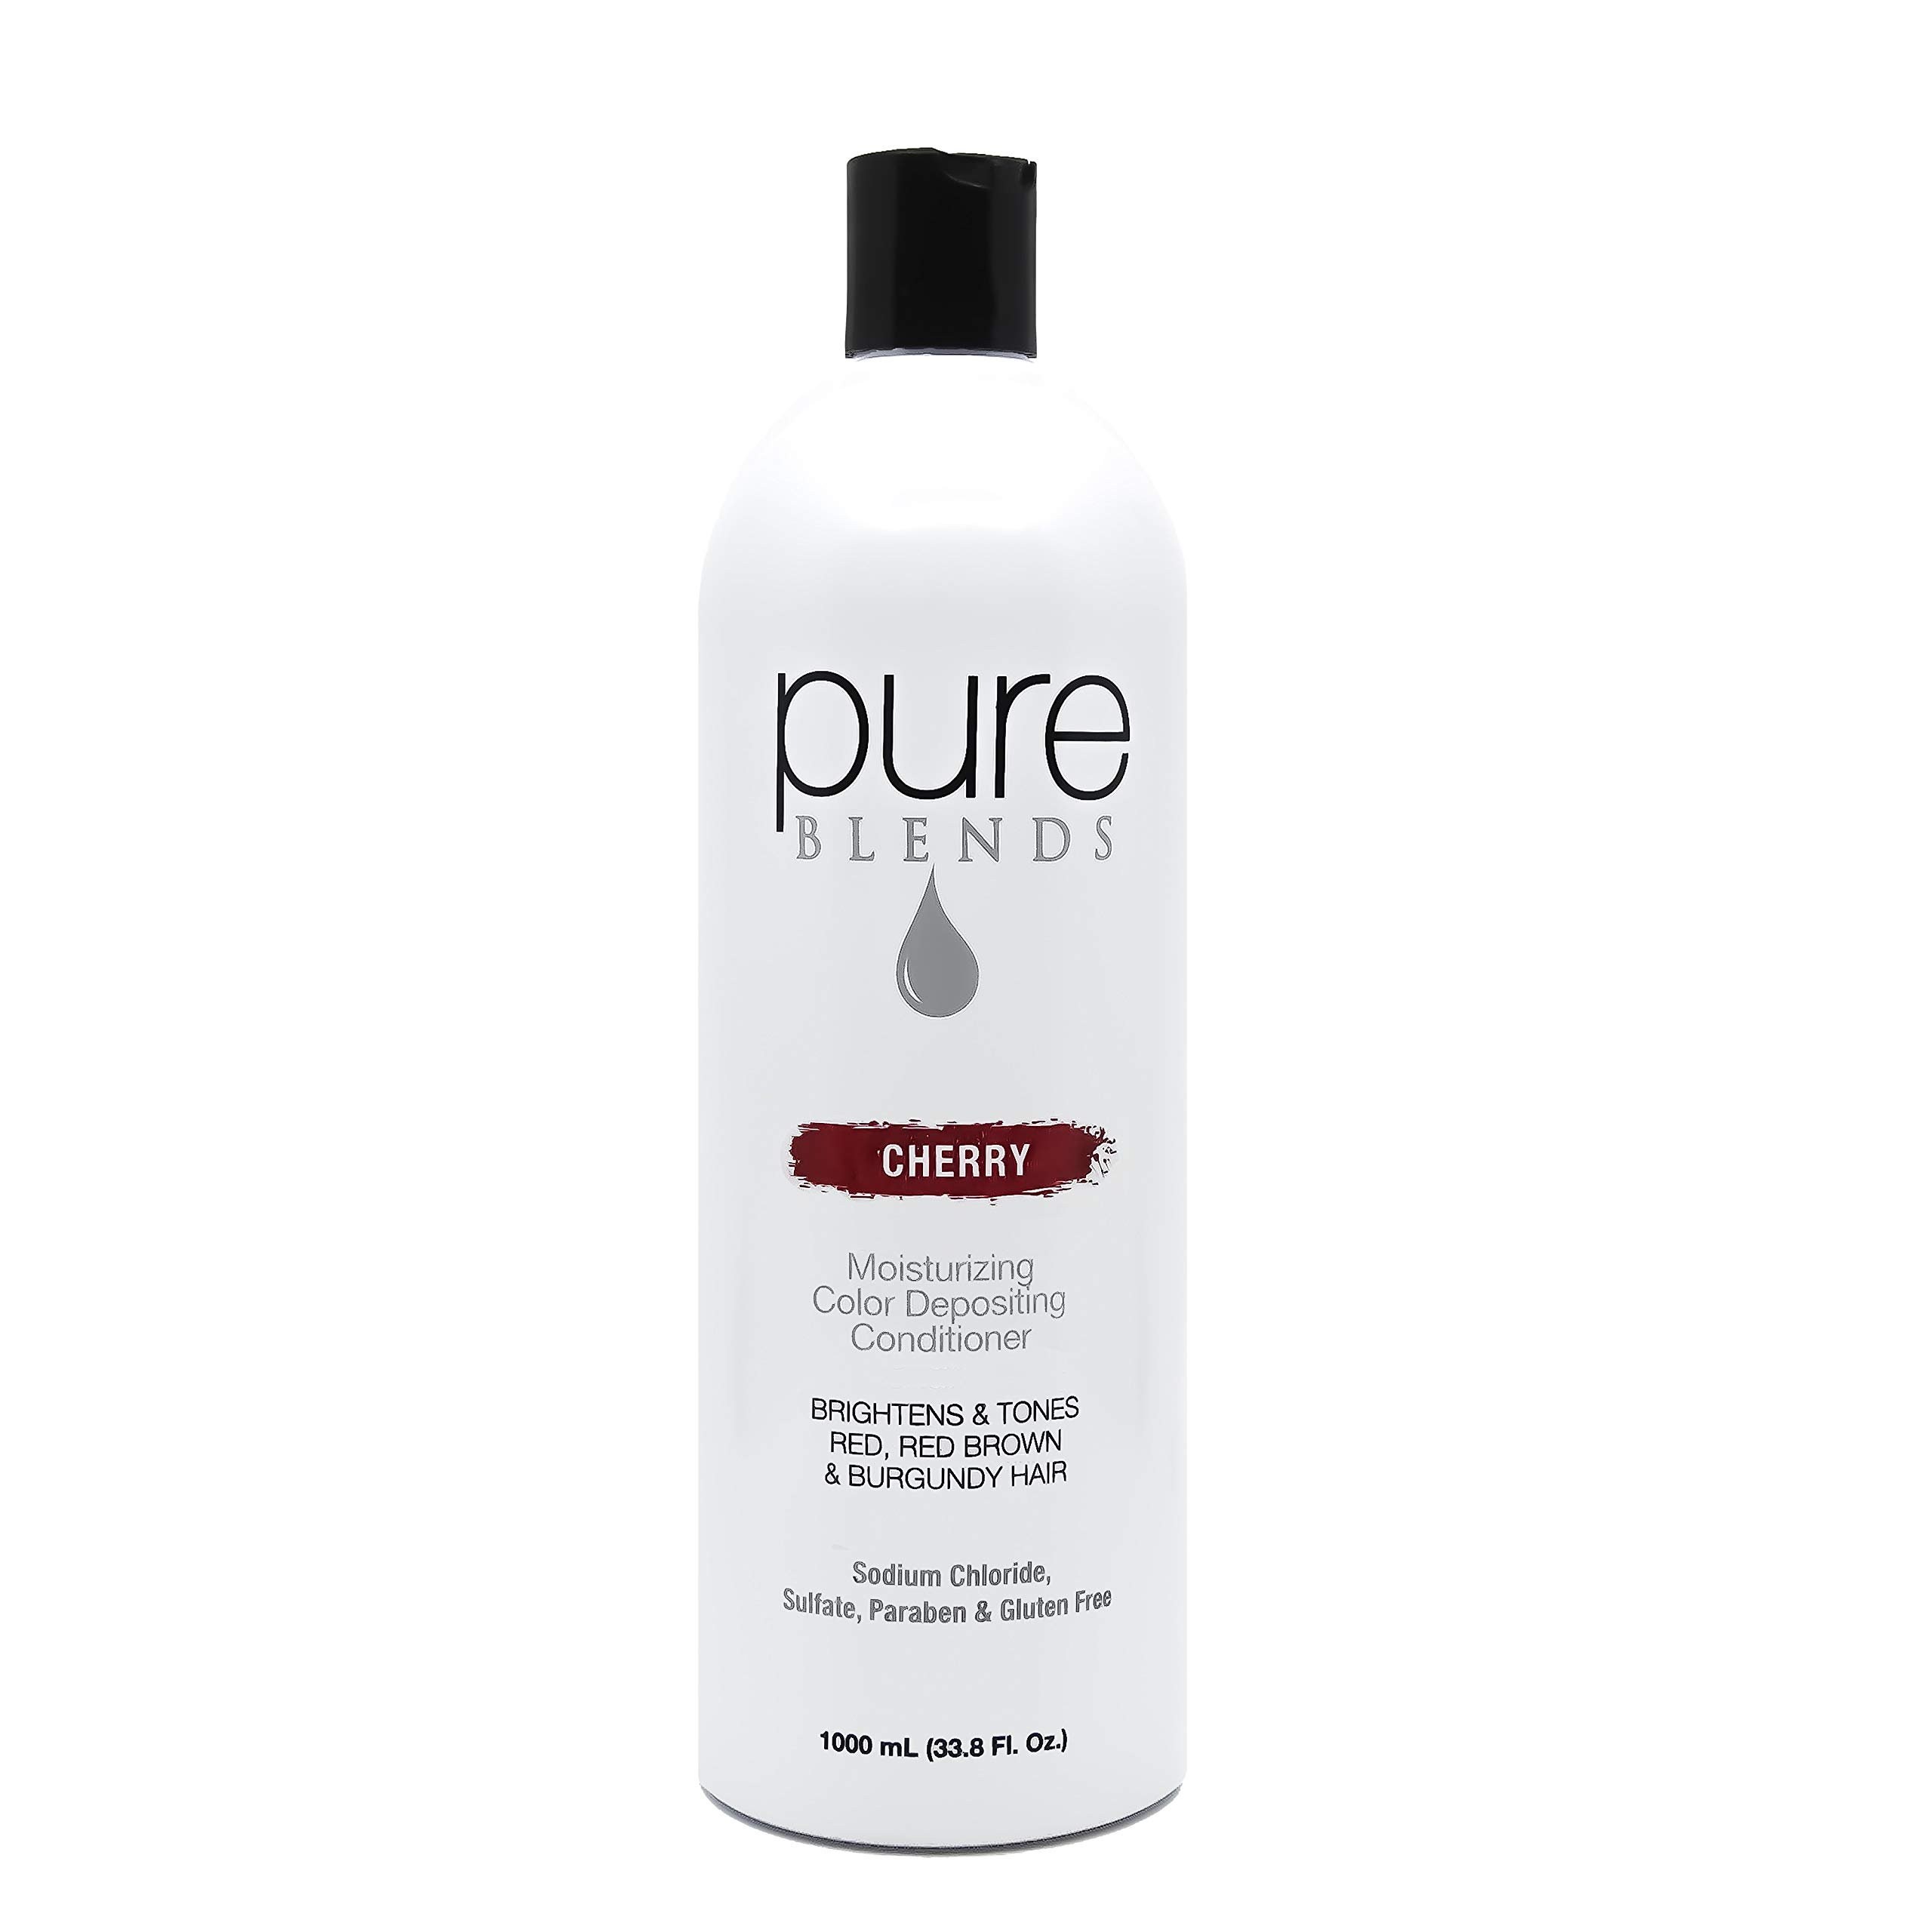 Pure Blends Moisturizing Color Depositing Conditioner - Cherry (Red, Red Brown and Burgundy Hair) 33.8 Ounce - Salon Quality by Pure Blends